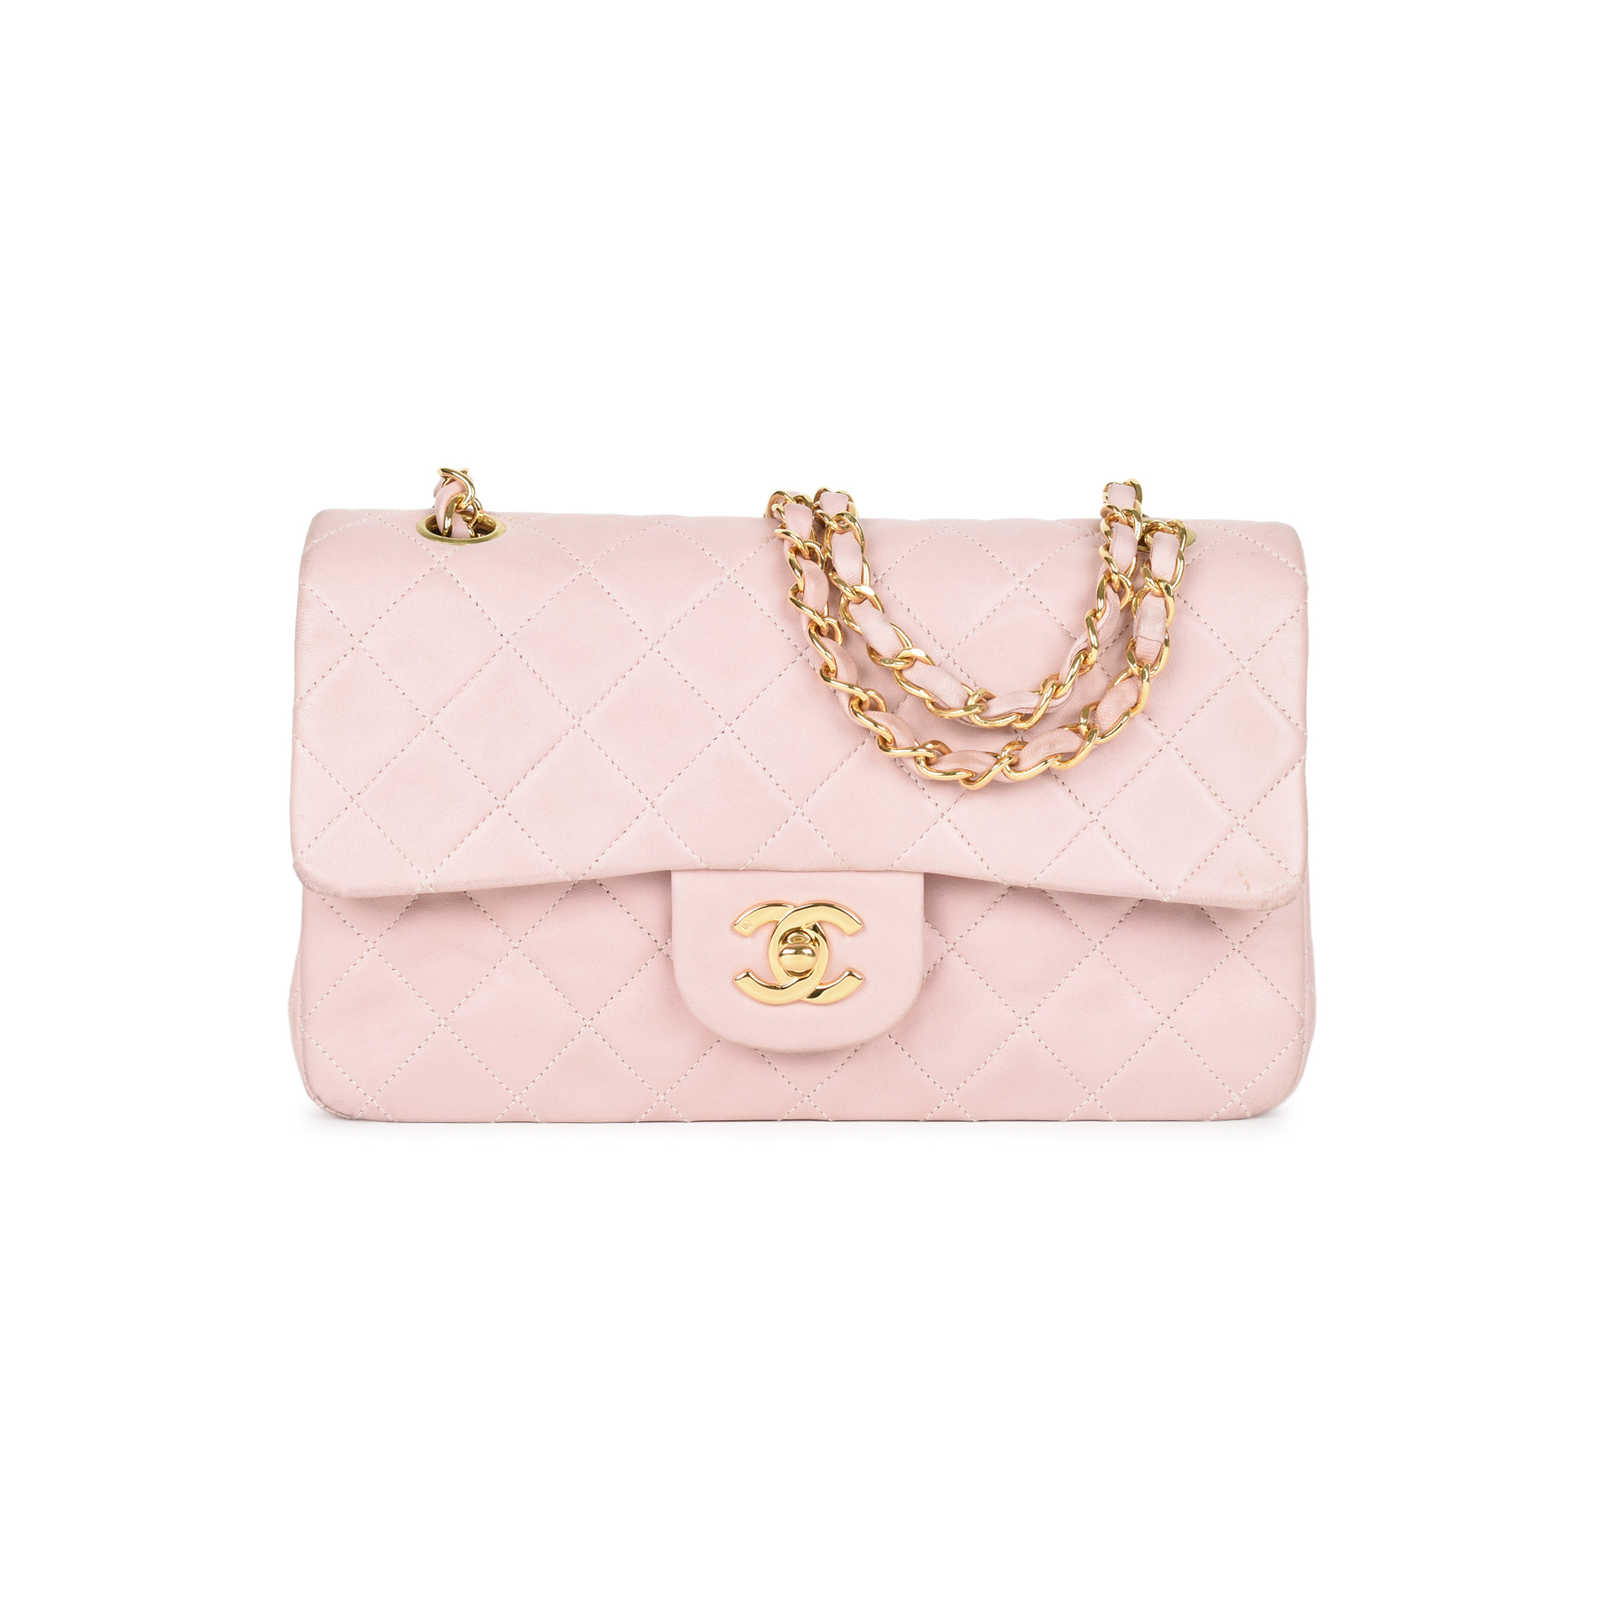 424458eb0460 Authentic Second Hand Chanel Baby Pink Small Classic Flap Bag (PSS-051-00379  ...